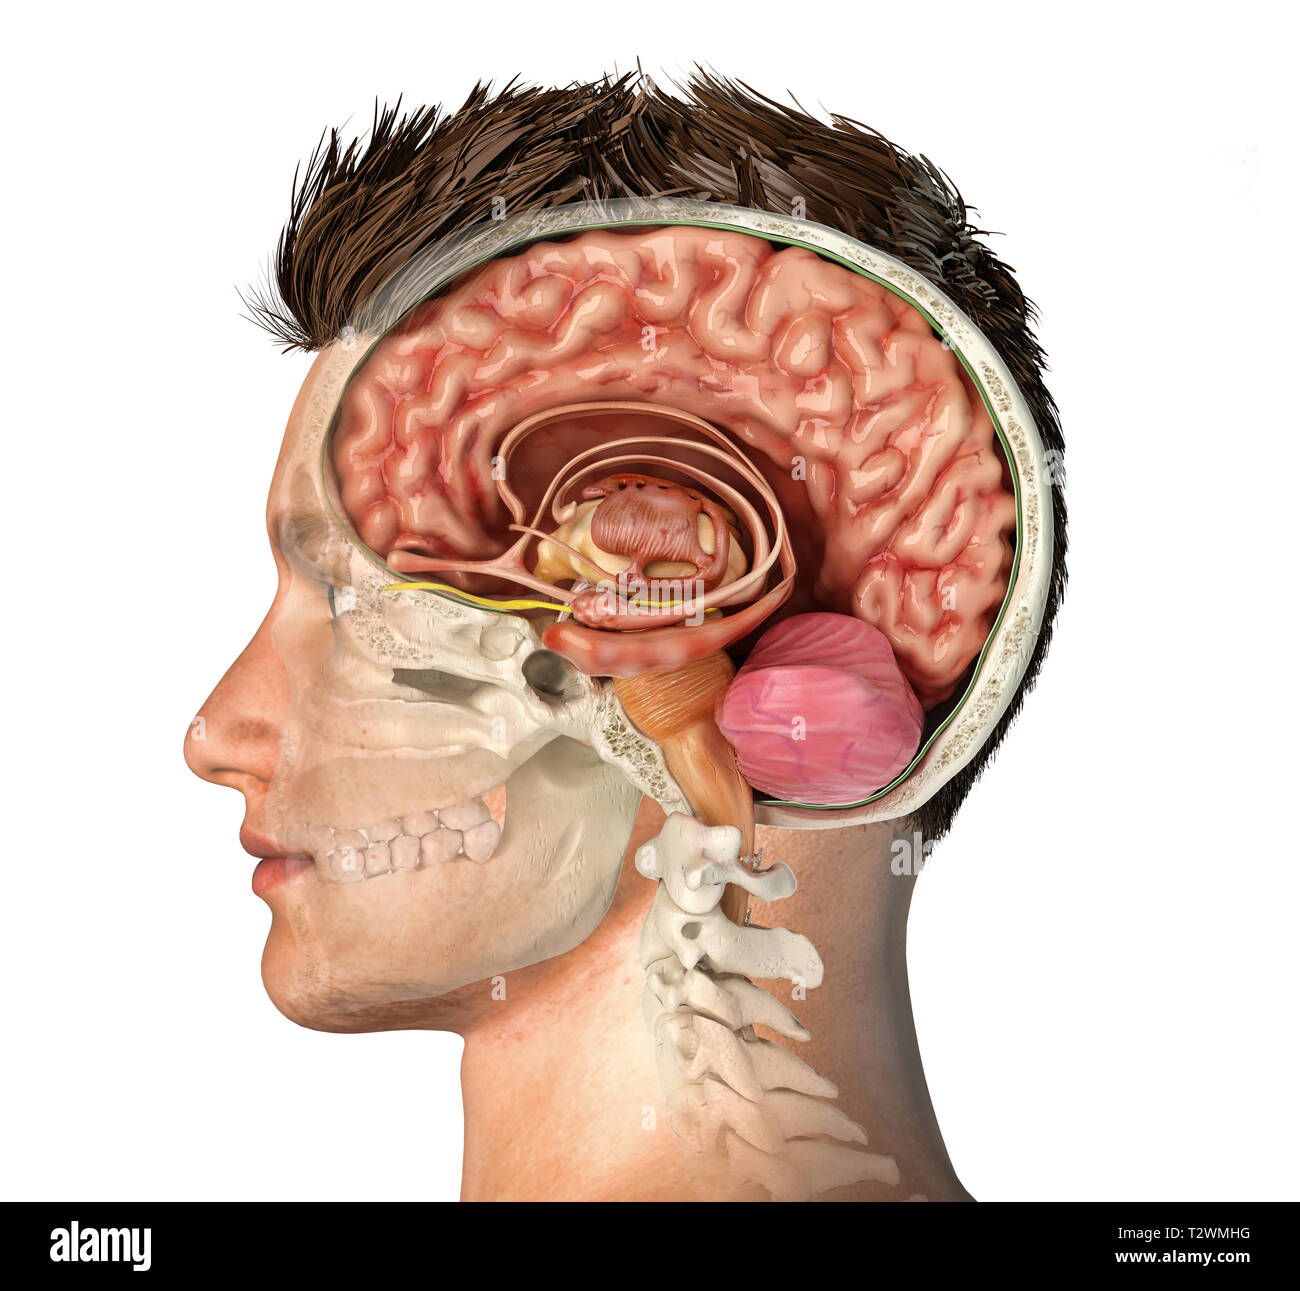 Man head with skull cross section with cut brain. Side view on white background. - Stock Image